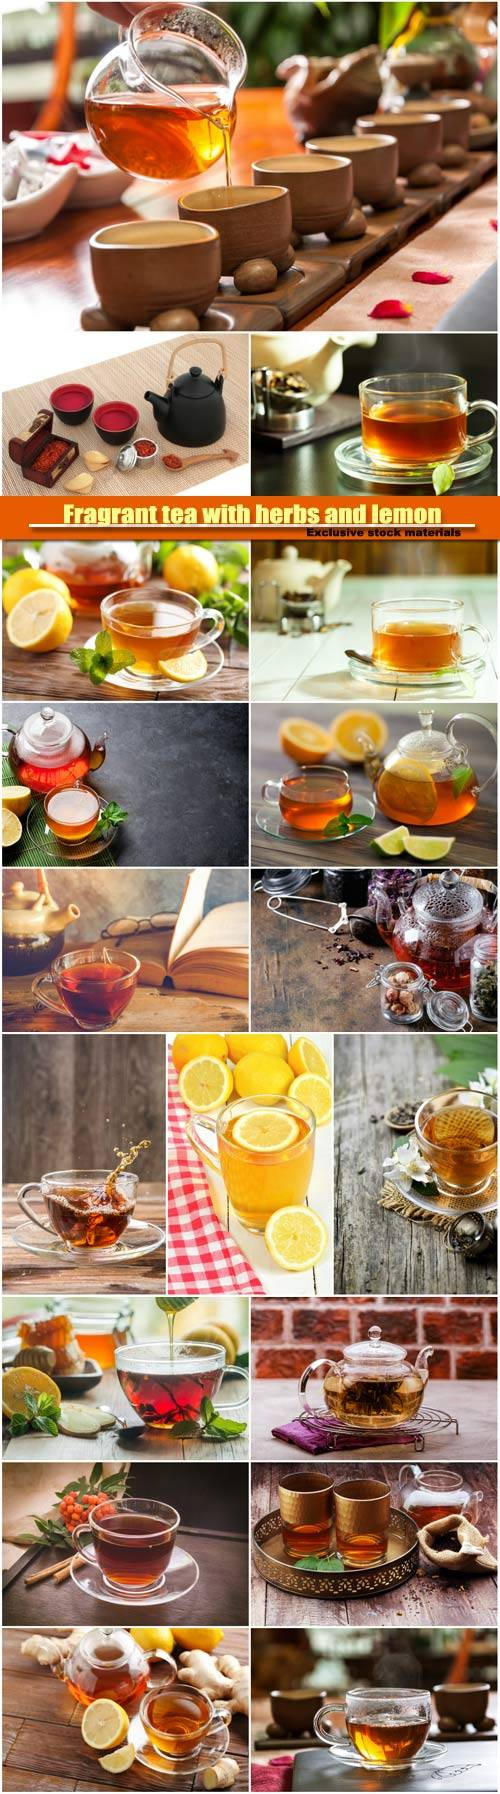 Fragrant tea with herbs and lemon